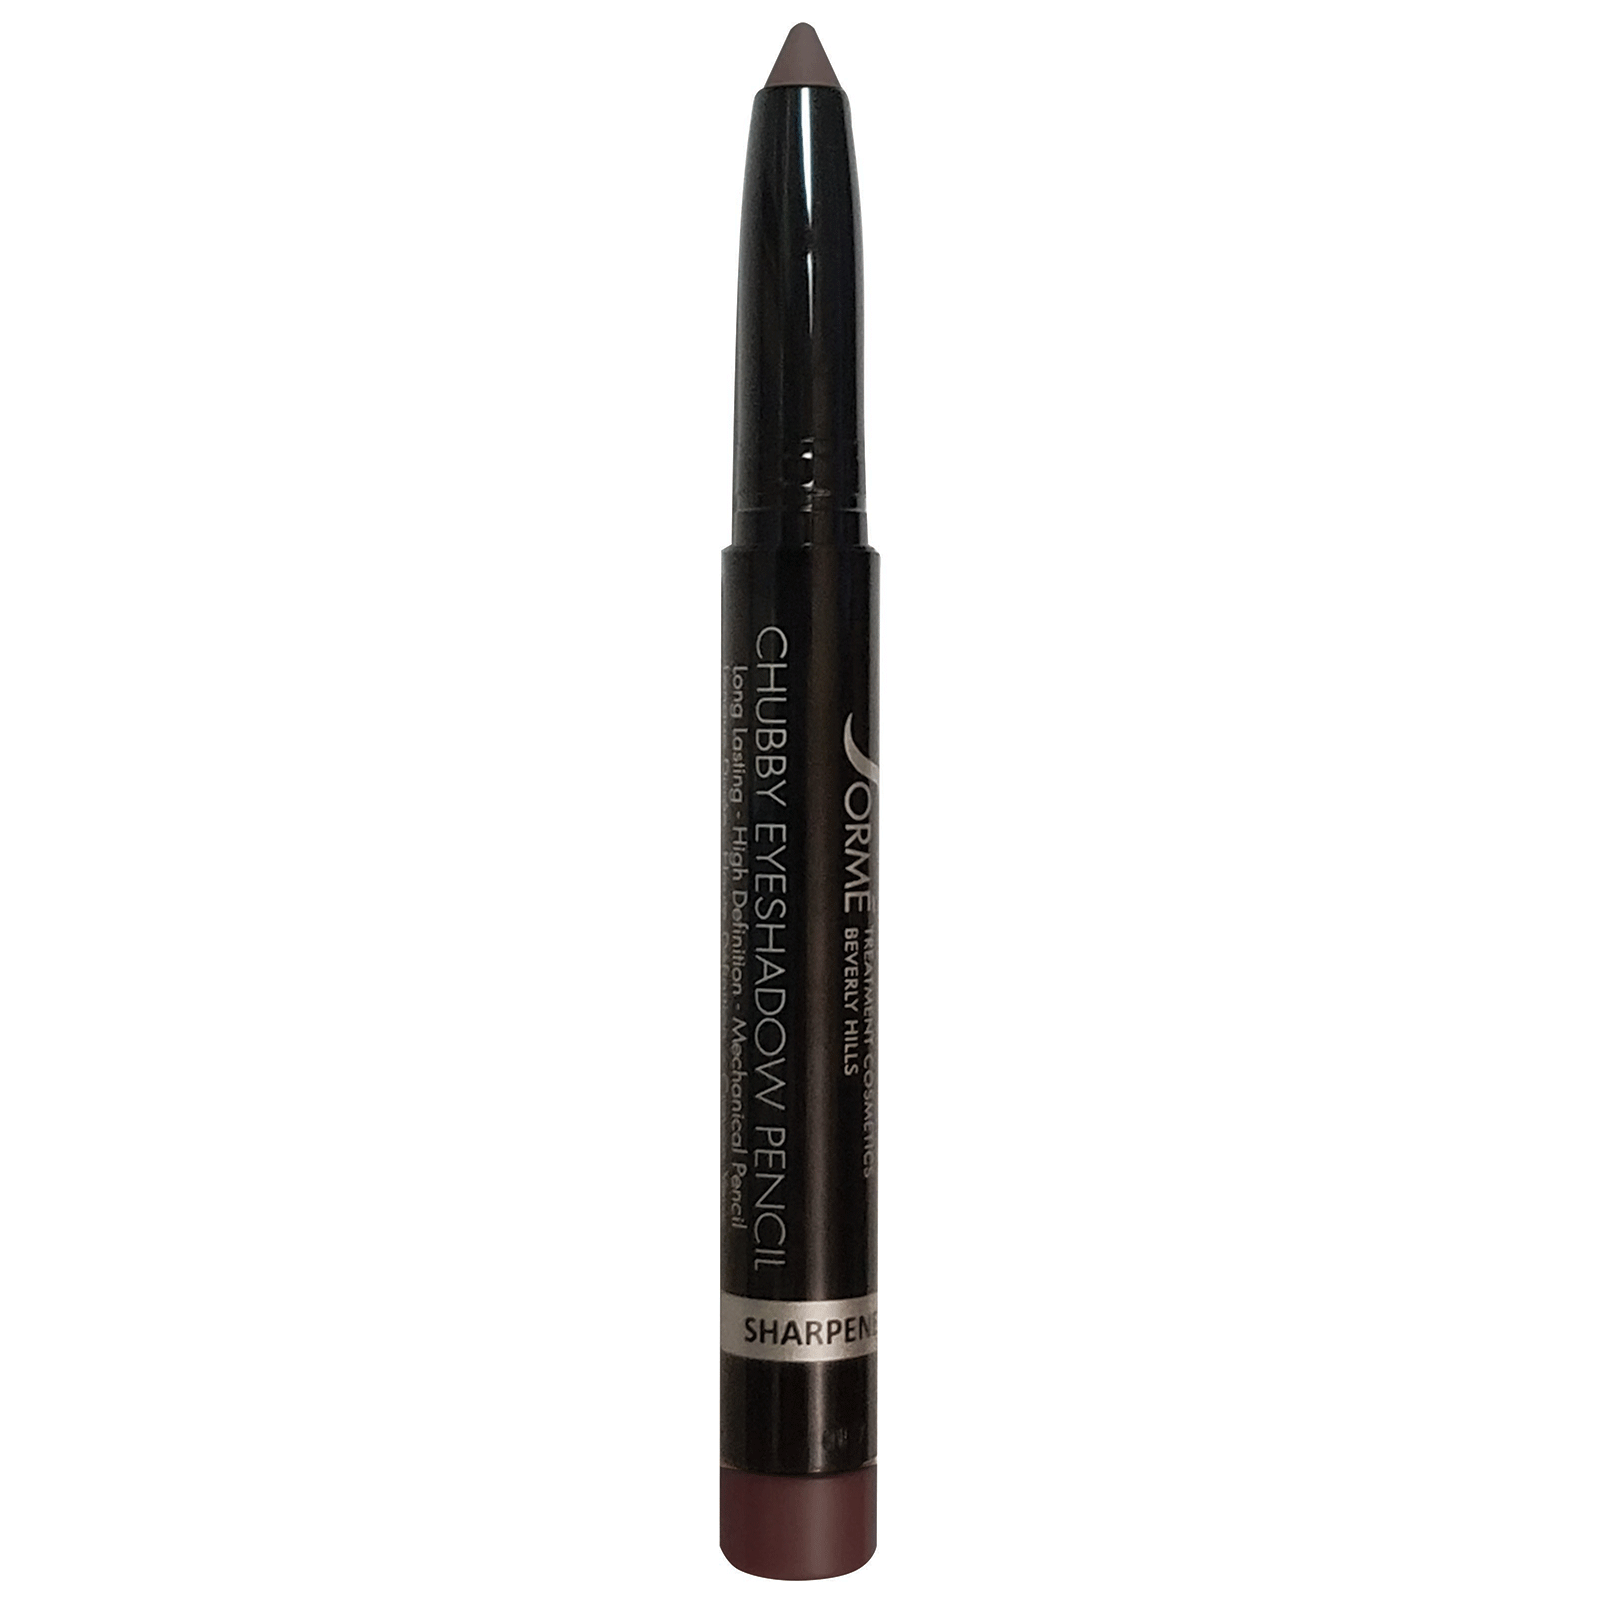 Tango Night Chubby Eyeshadow Pencil